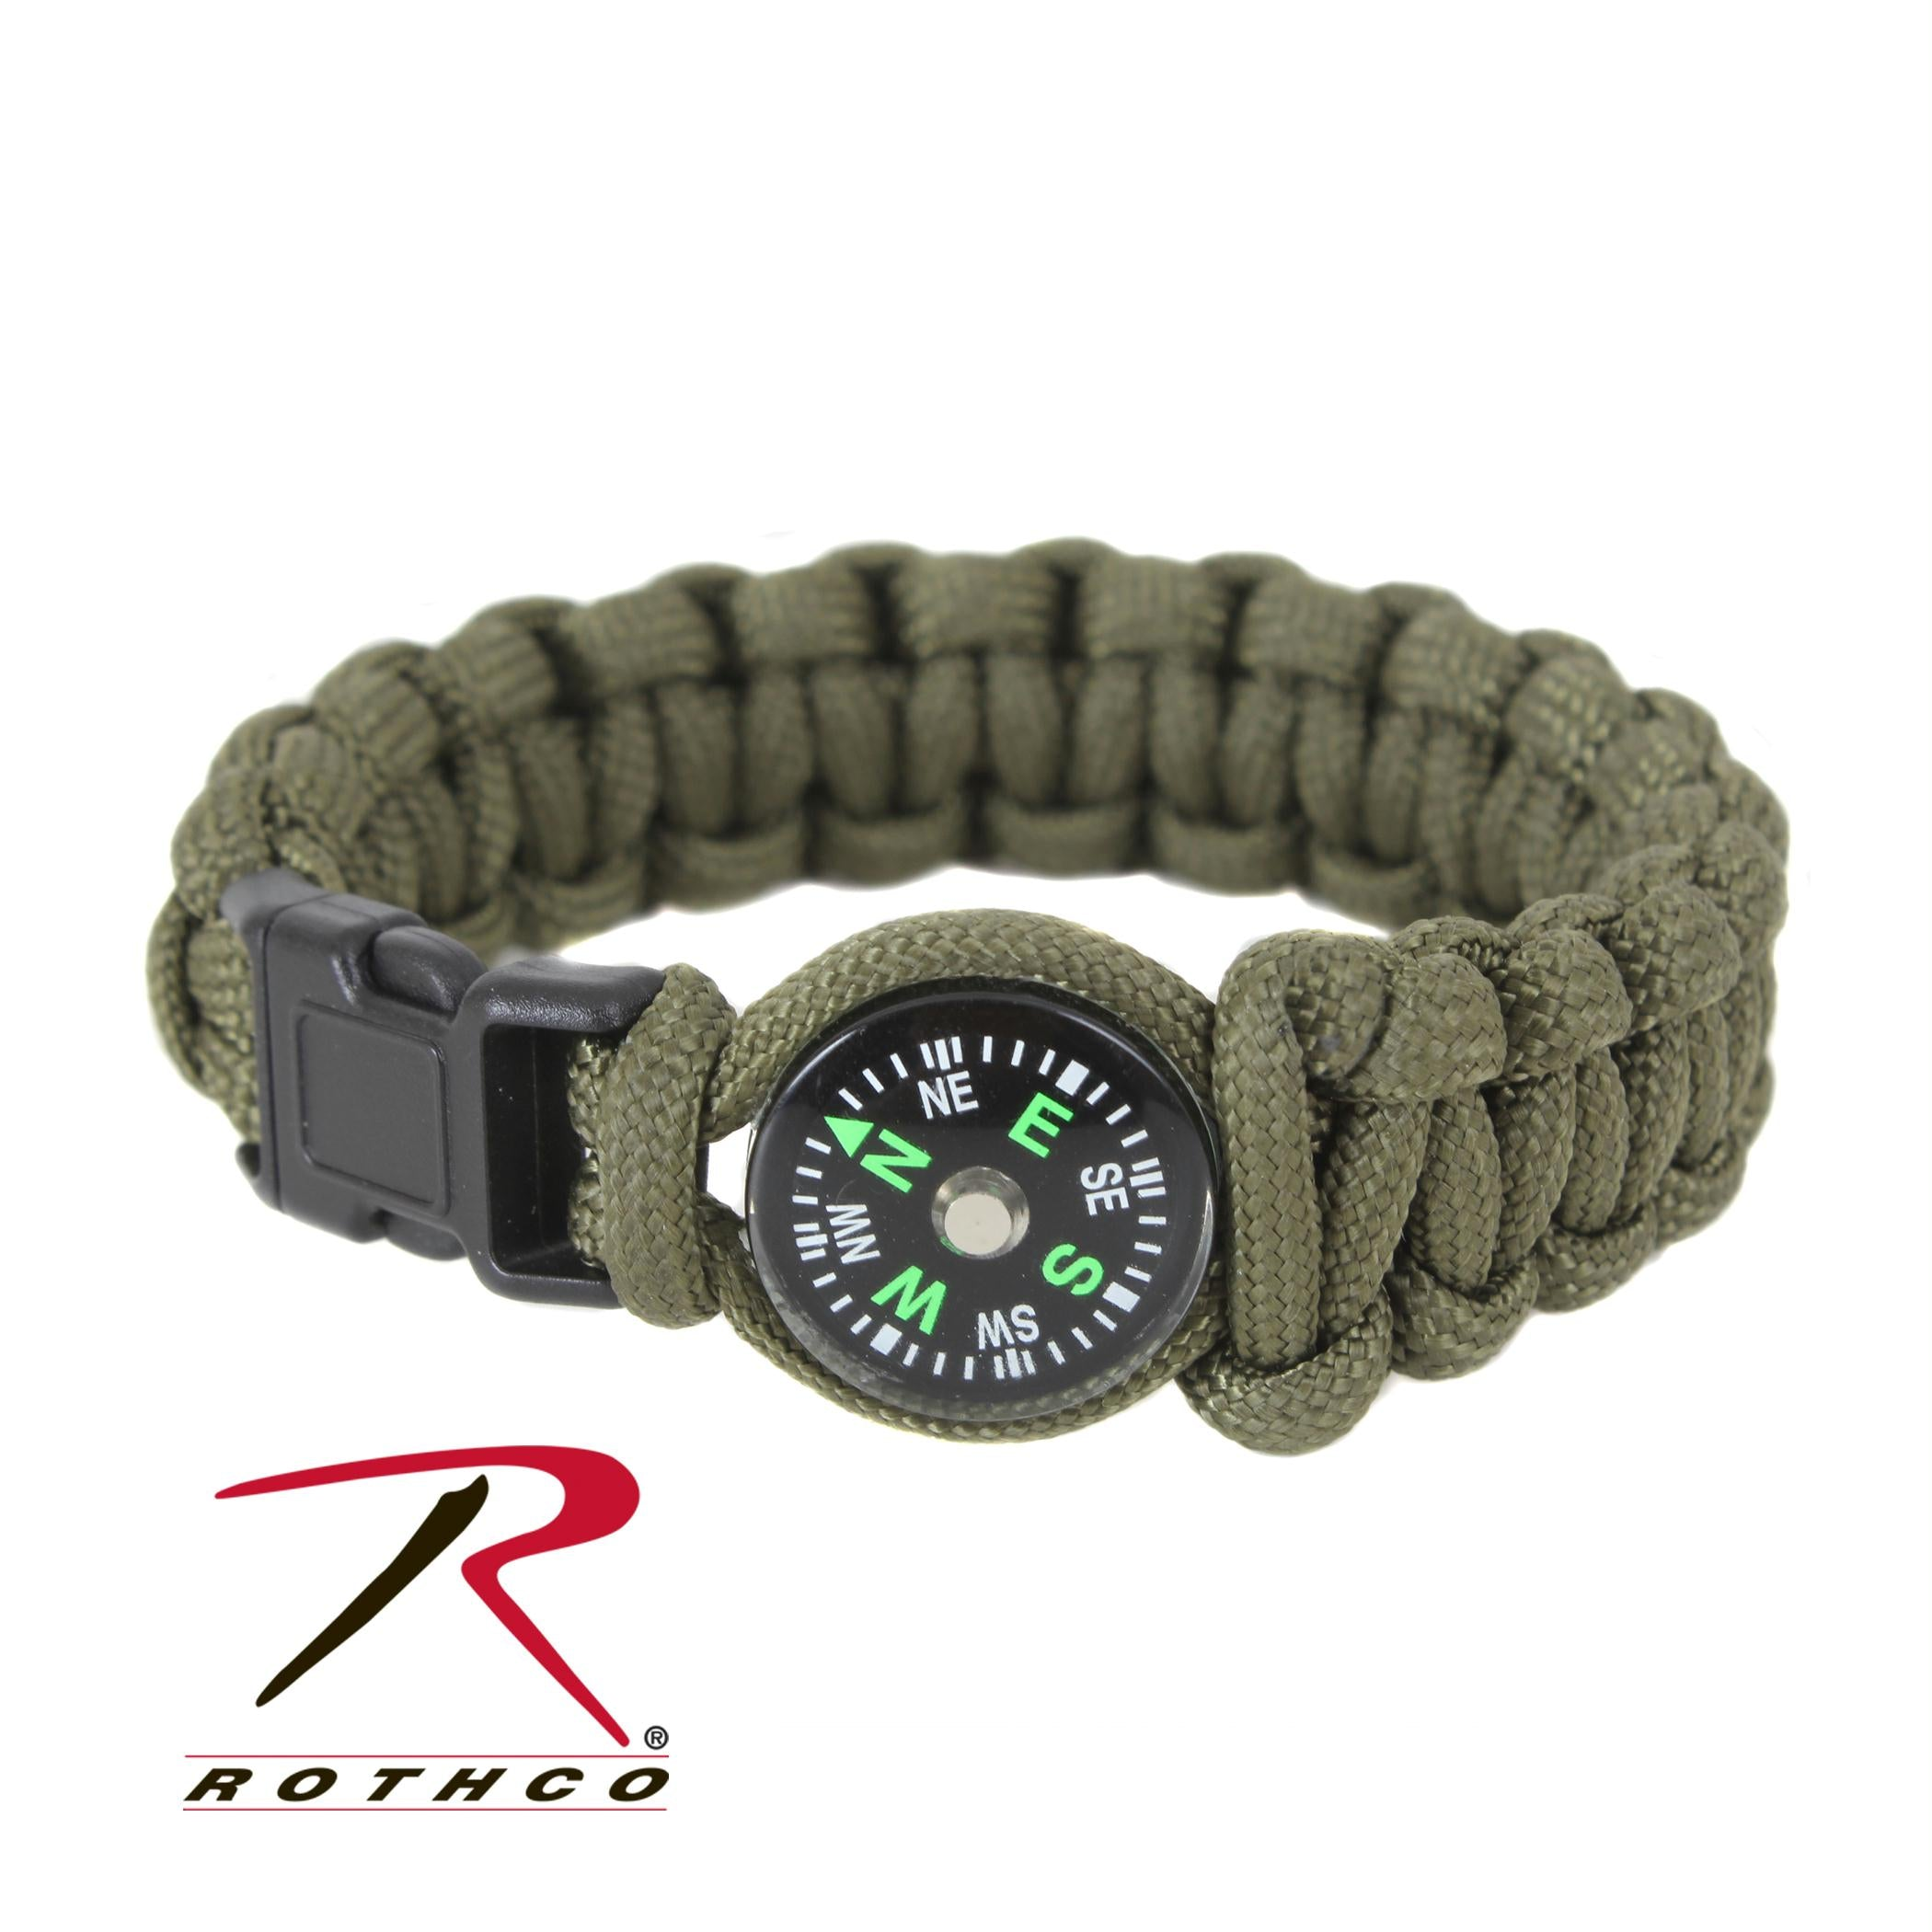 Rothco Paracord Compass Bracelet - Olive Drab / 8 Inches